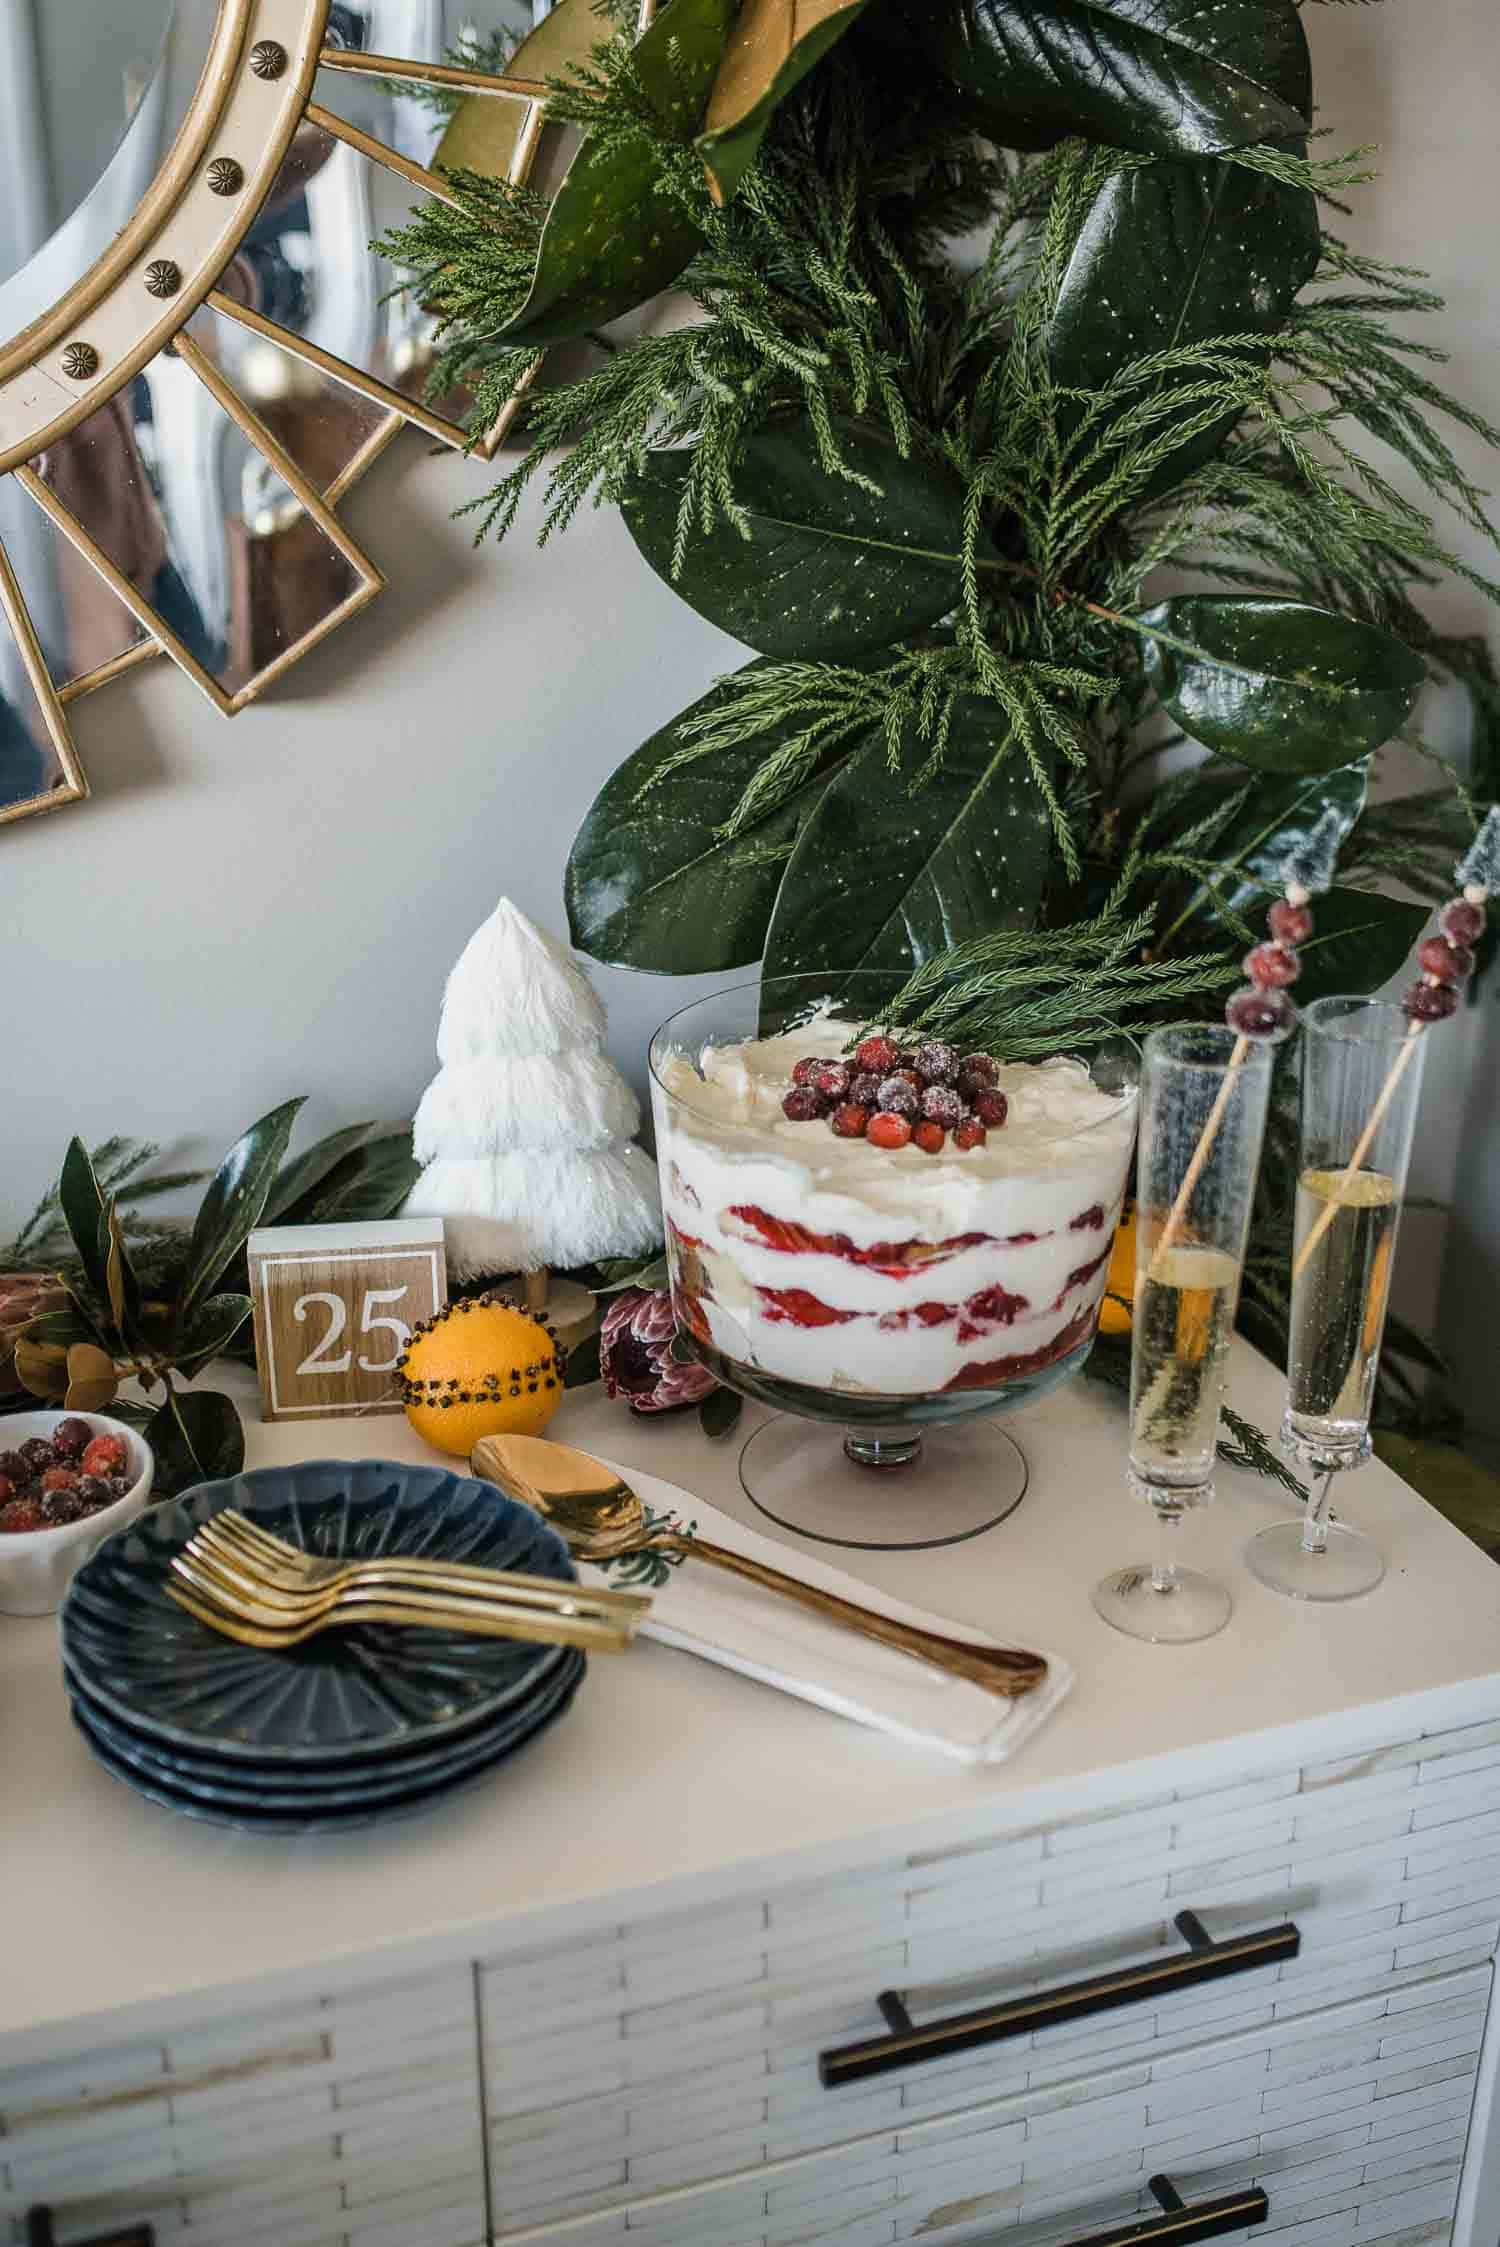 5 Tips To A Great Dessert Bar For Any Holiday